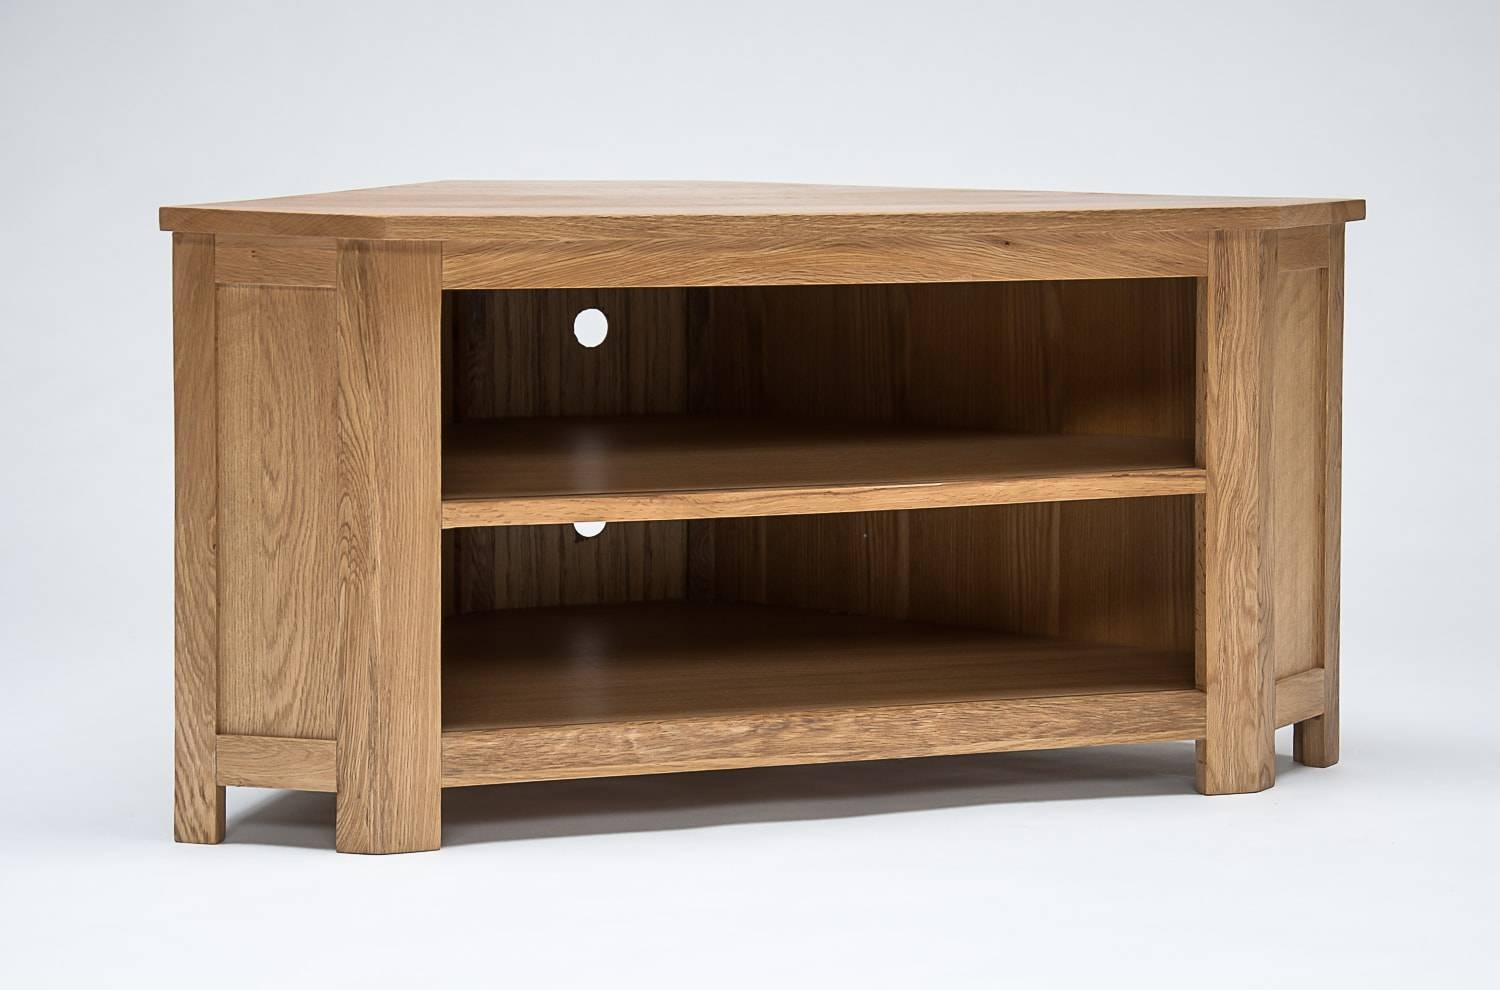 Lansdown Oak Low Corner Tv Cabinet – Oak Furniture Hub intended for Low Corner Tv Cabinets (Image 6 of 15)